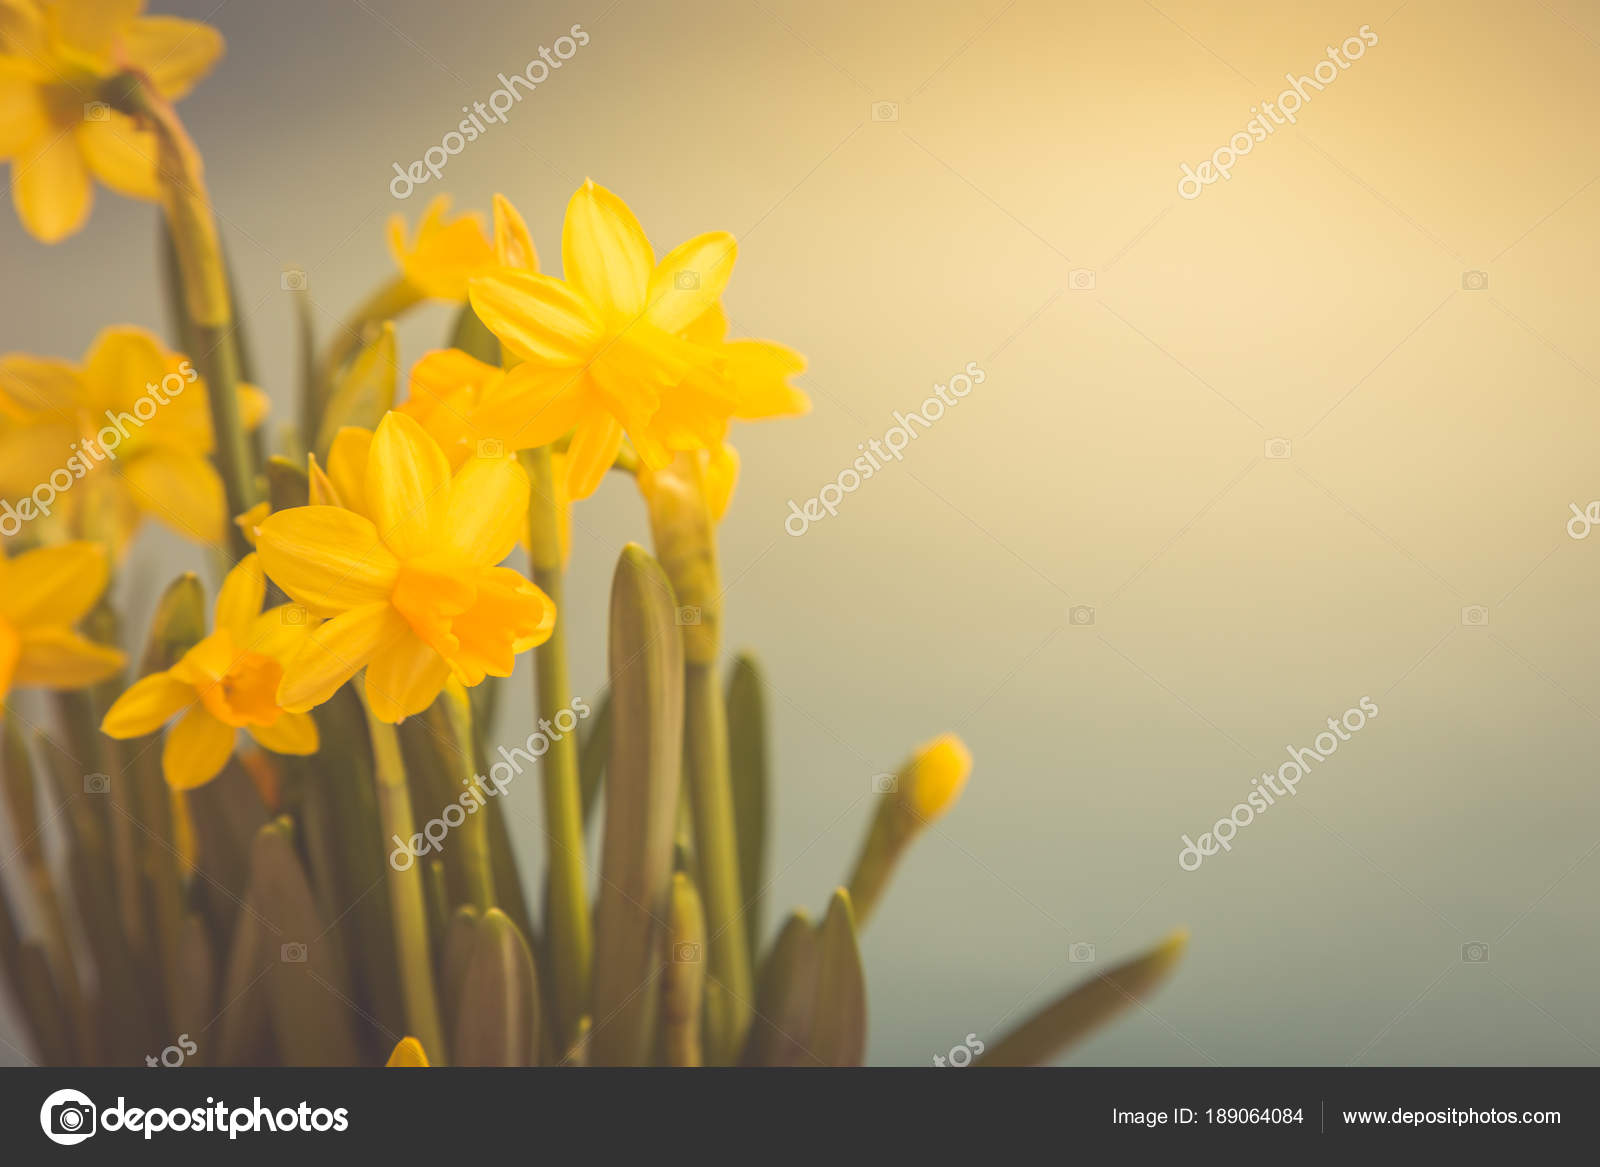 Amazing Yellow Daffodils flowers in basket  image for spring ba     Amazing Yellow Daffodils flowers in basket  image for spring ba     Stock  Photo